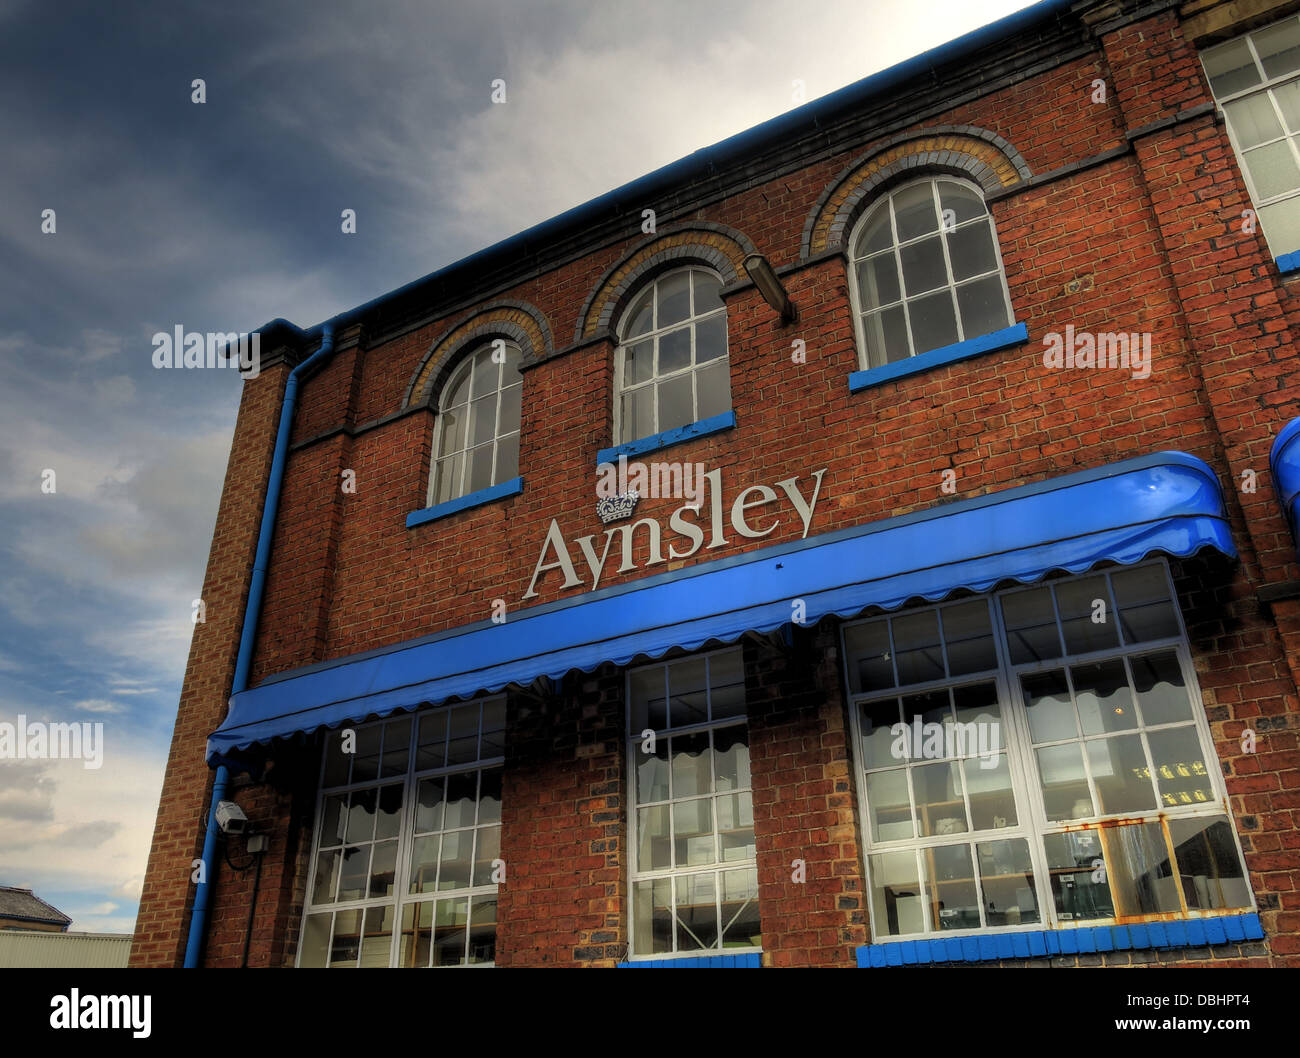 Aynsley Pottery Office, Longton, Stoke-on-trent, Staff, England - Stock Image